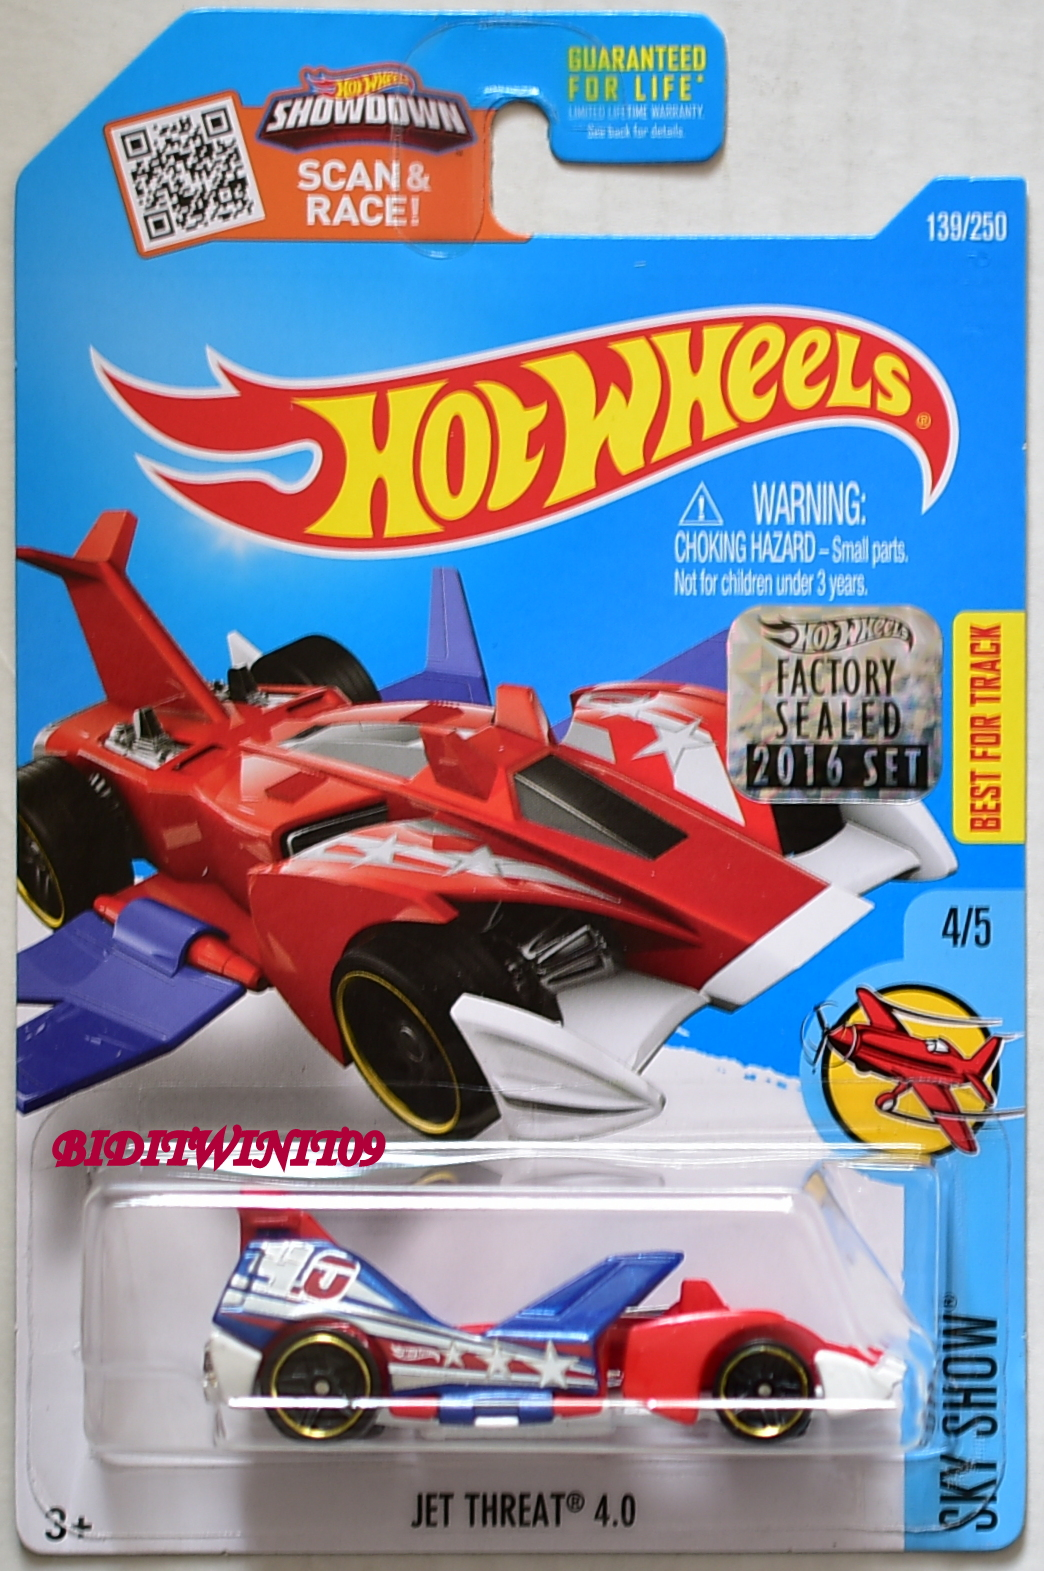 HOT WHEELS 2016 SKY SHOW JET THREAT 4.0 #4/5 FACTORY SEALED